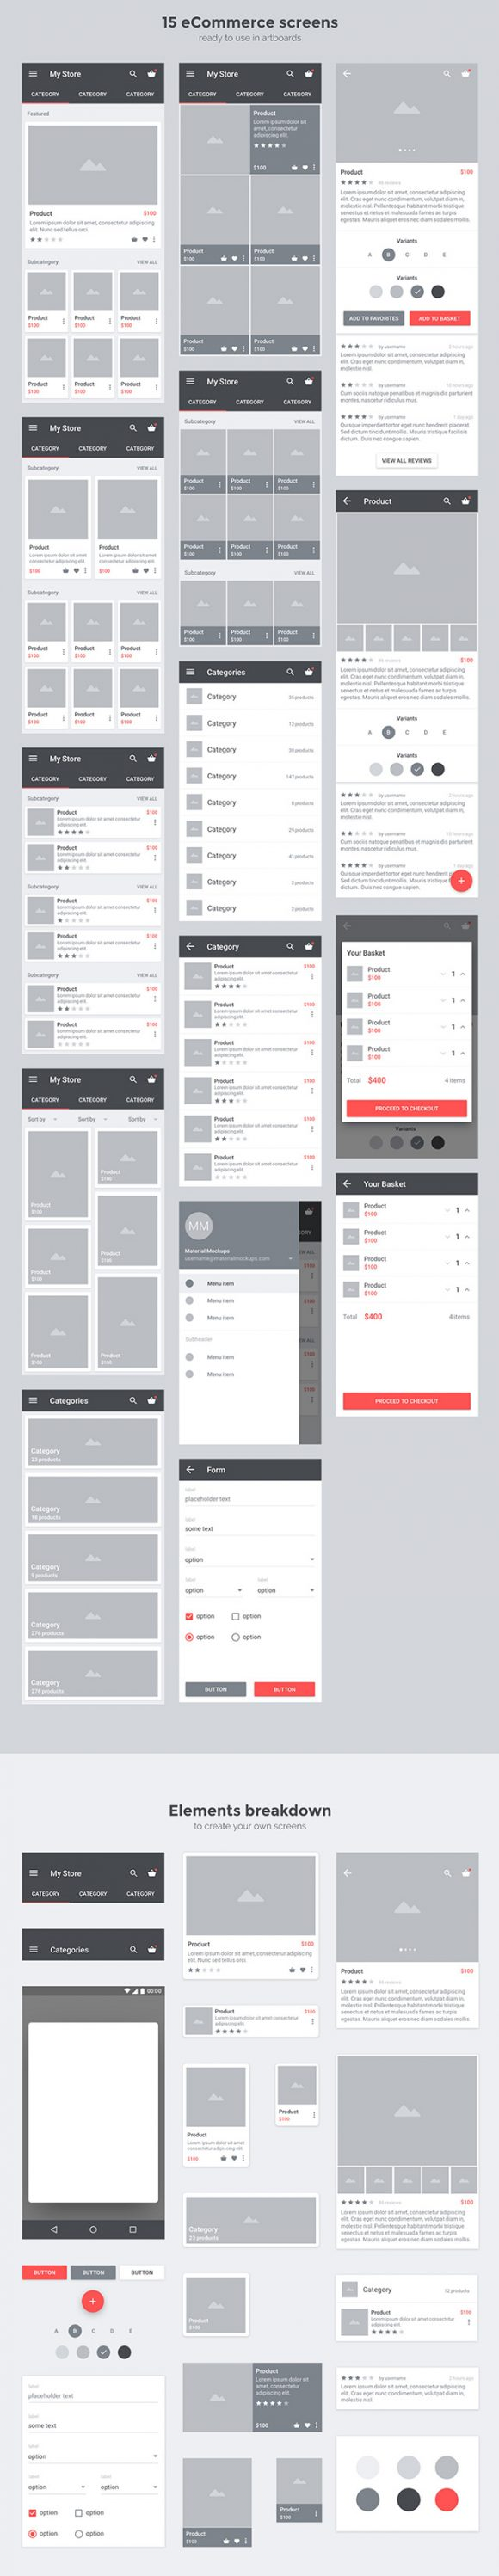 Carbon: Material UI kit - Full preview